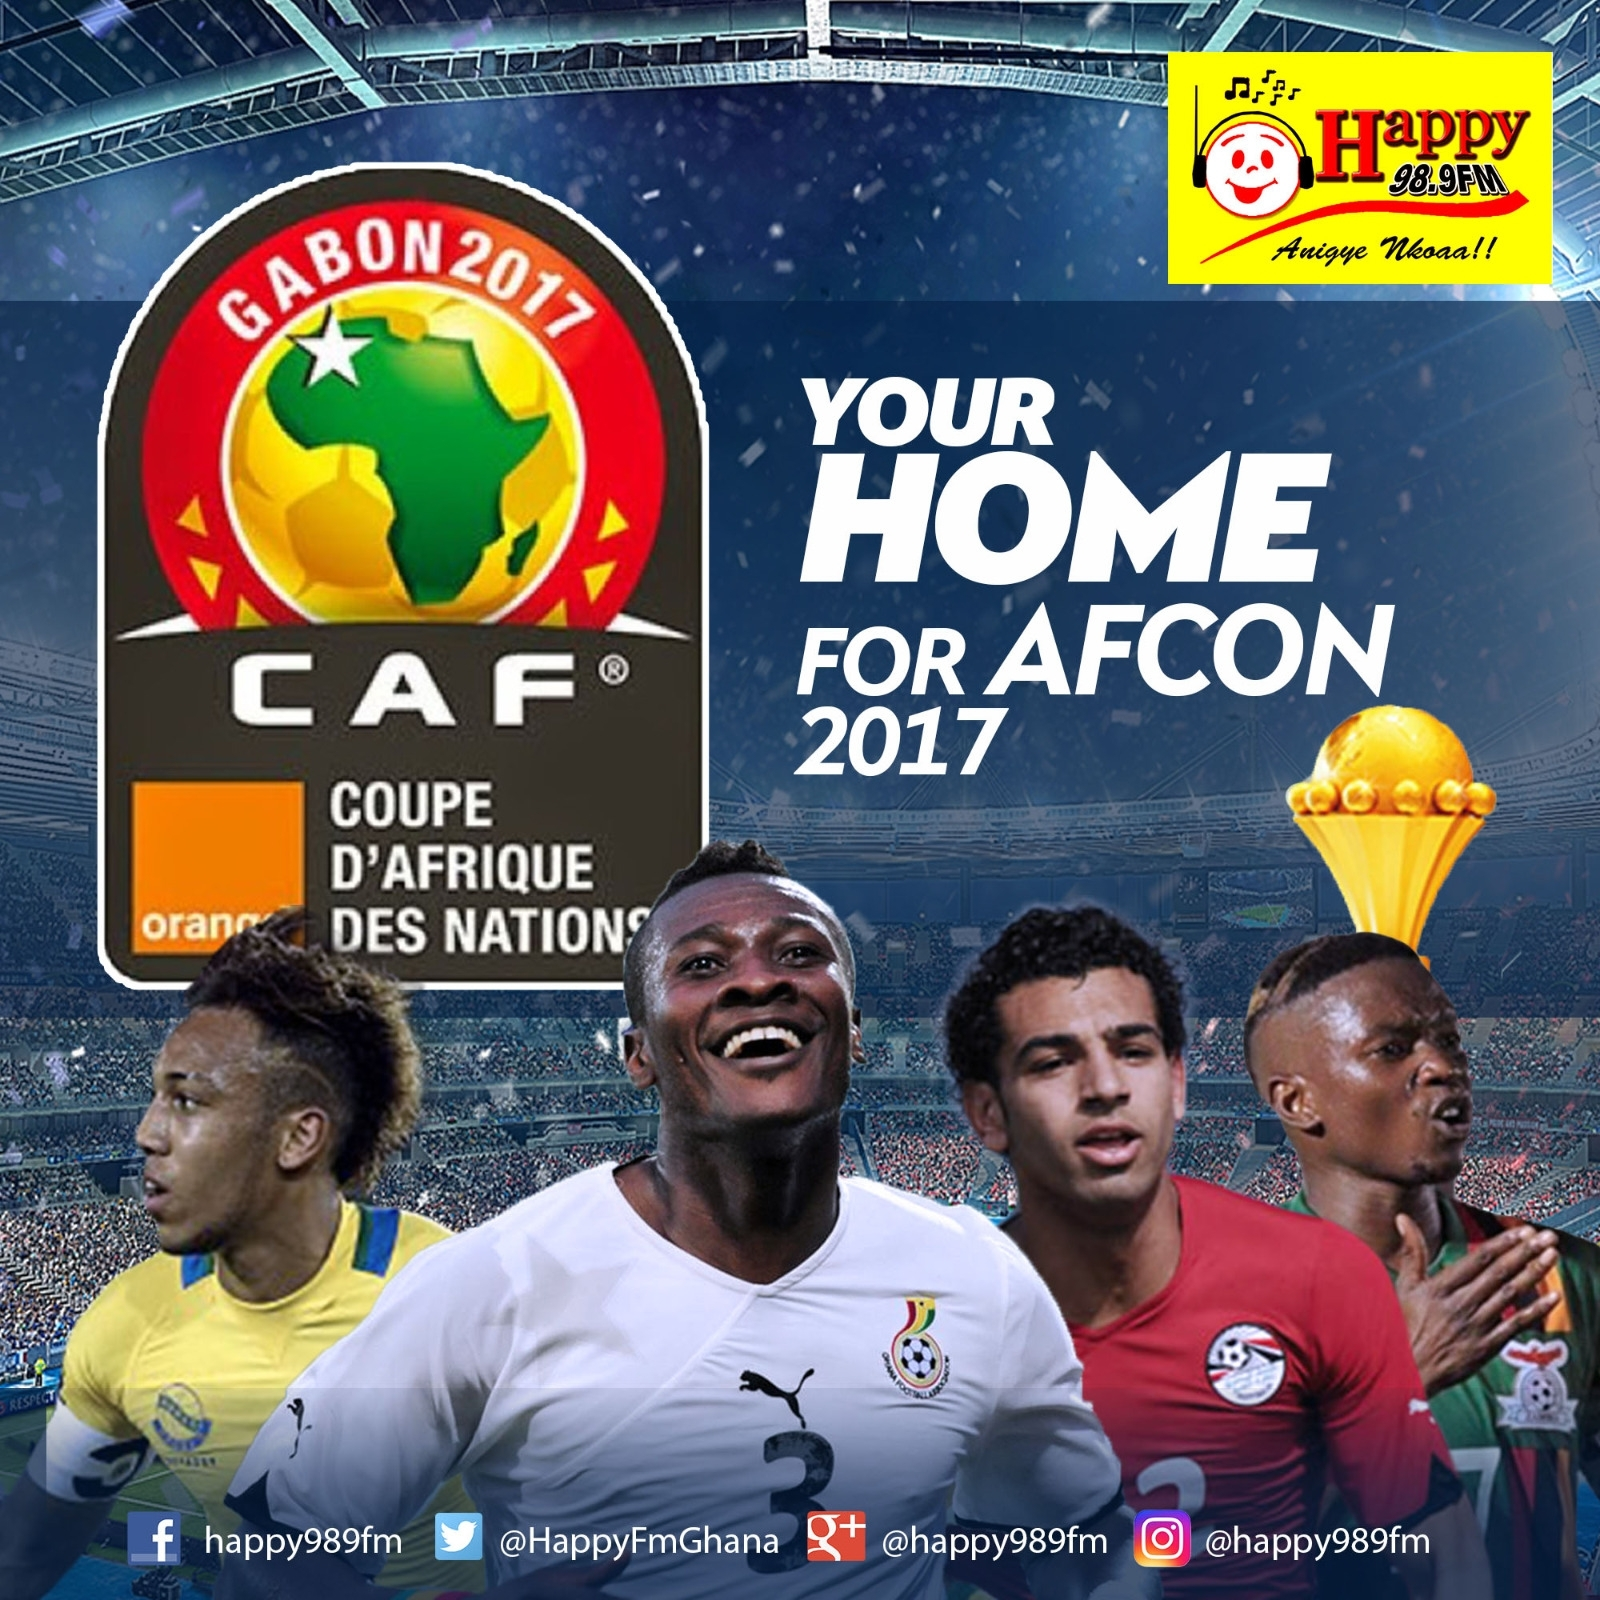 HAPPY FM TO SHOW LIVE FIXTURES OF AFCON 2017